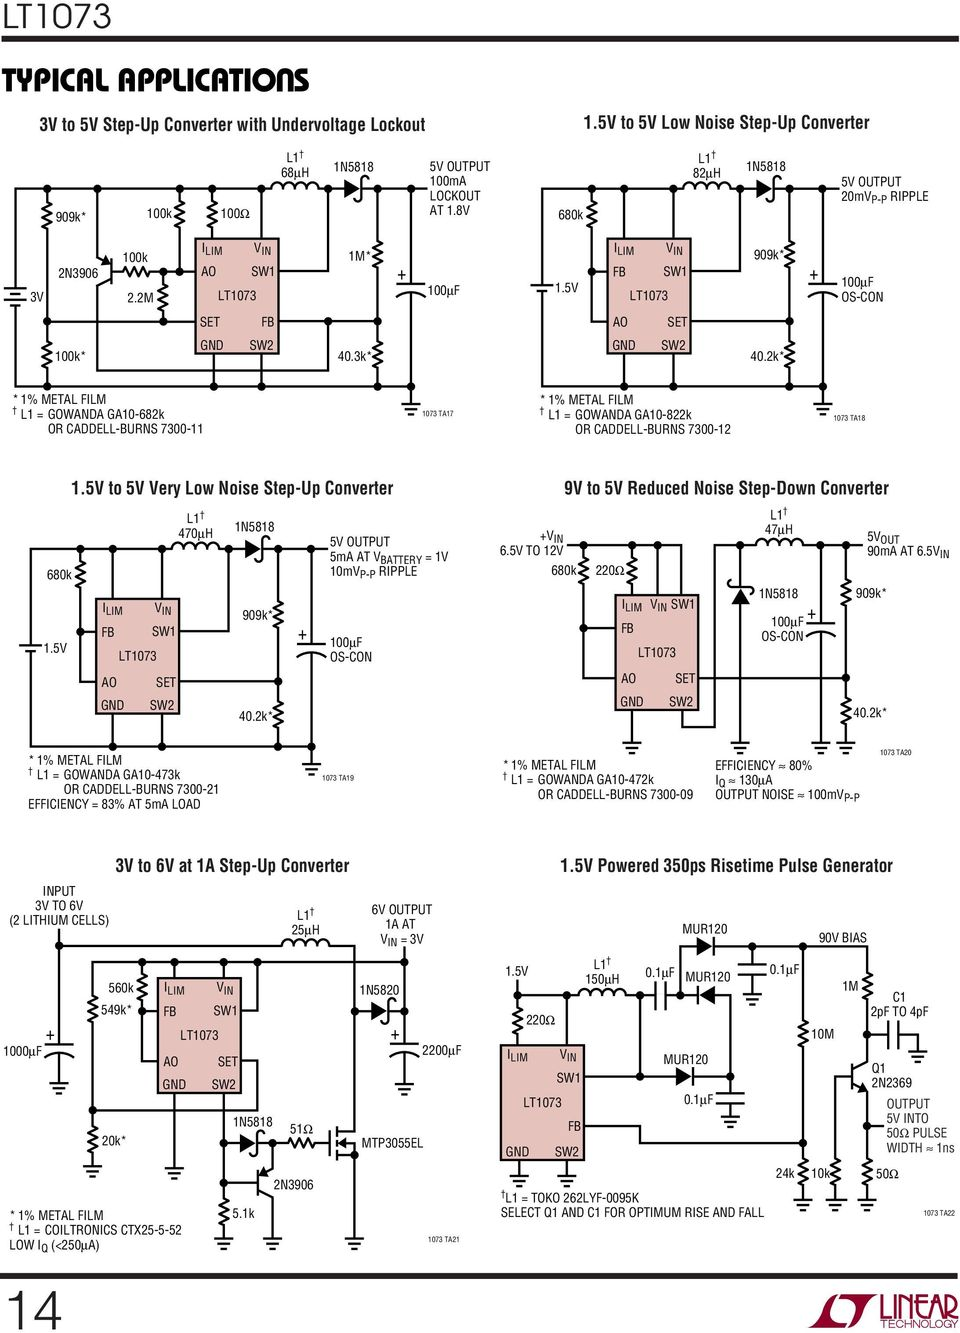 2k* L1 = GOWANDA GA10-682k OR CADDELL-BRNS 7300-11 1073 TA17 L1 = GOWANDA GA10-822k OR CADDELL-BRNS 7300-12 1073 TA18 680k to 5V Very Low Noise Step-p Converter 9V to 5V Reduced Noise Step-Down